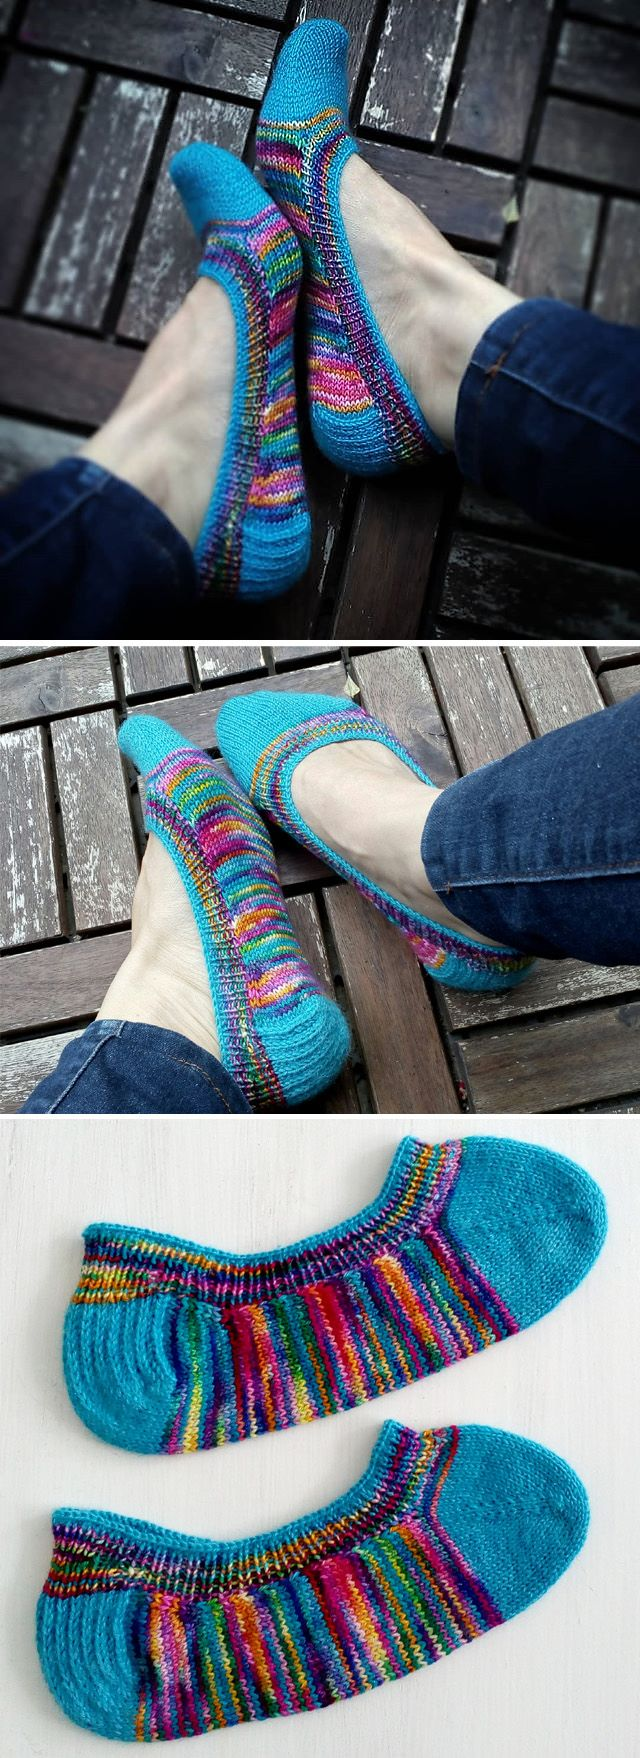 Skimmer Socks Revisited - Free Pattern #knittinginspiration